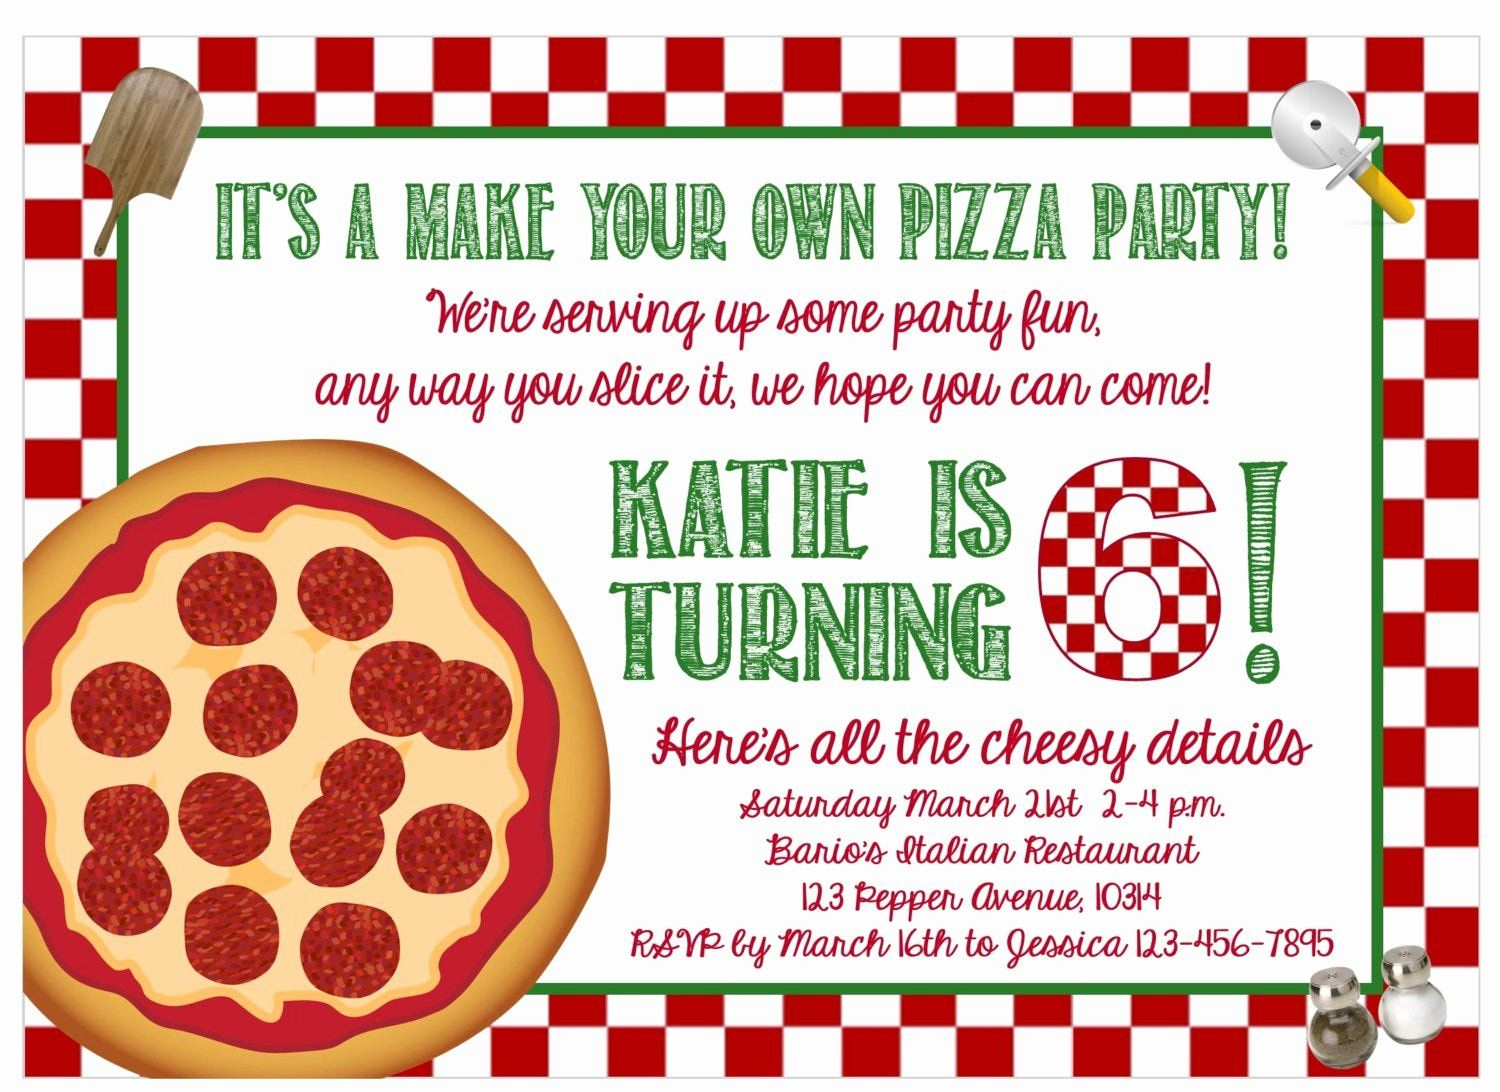 Pizza Party Invites Template Inspirational Print At Home Make Your Own Pizza Party In 2020 Pizza Party Invitations Party Invite Template Pizza Party